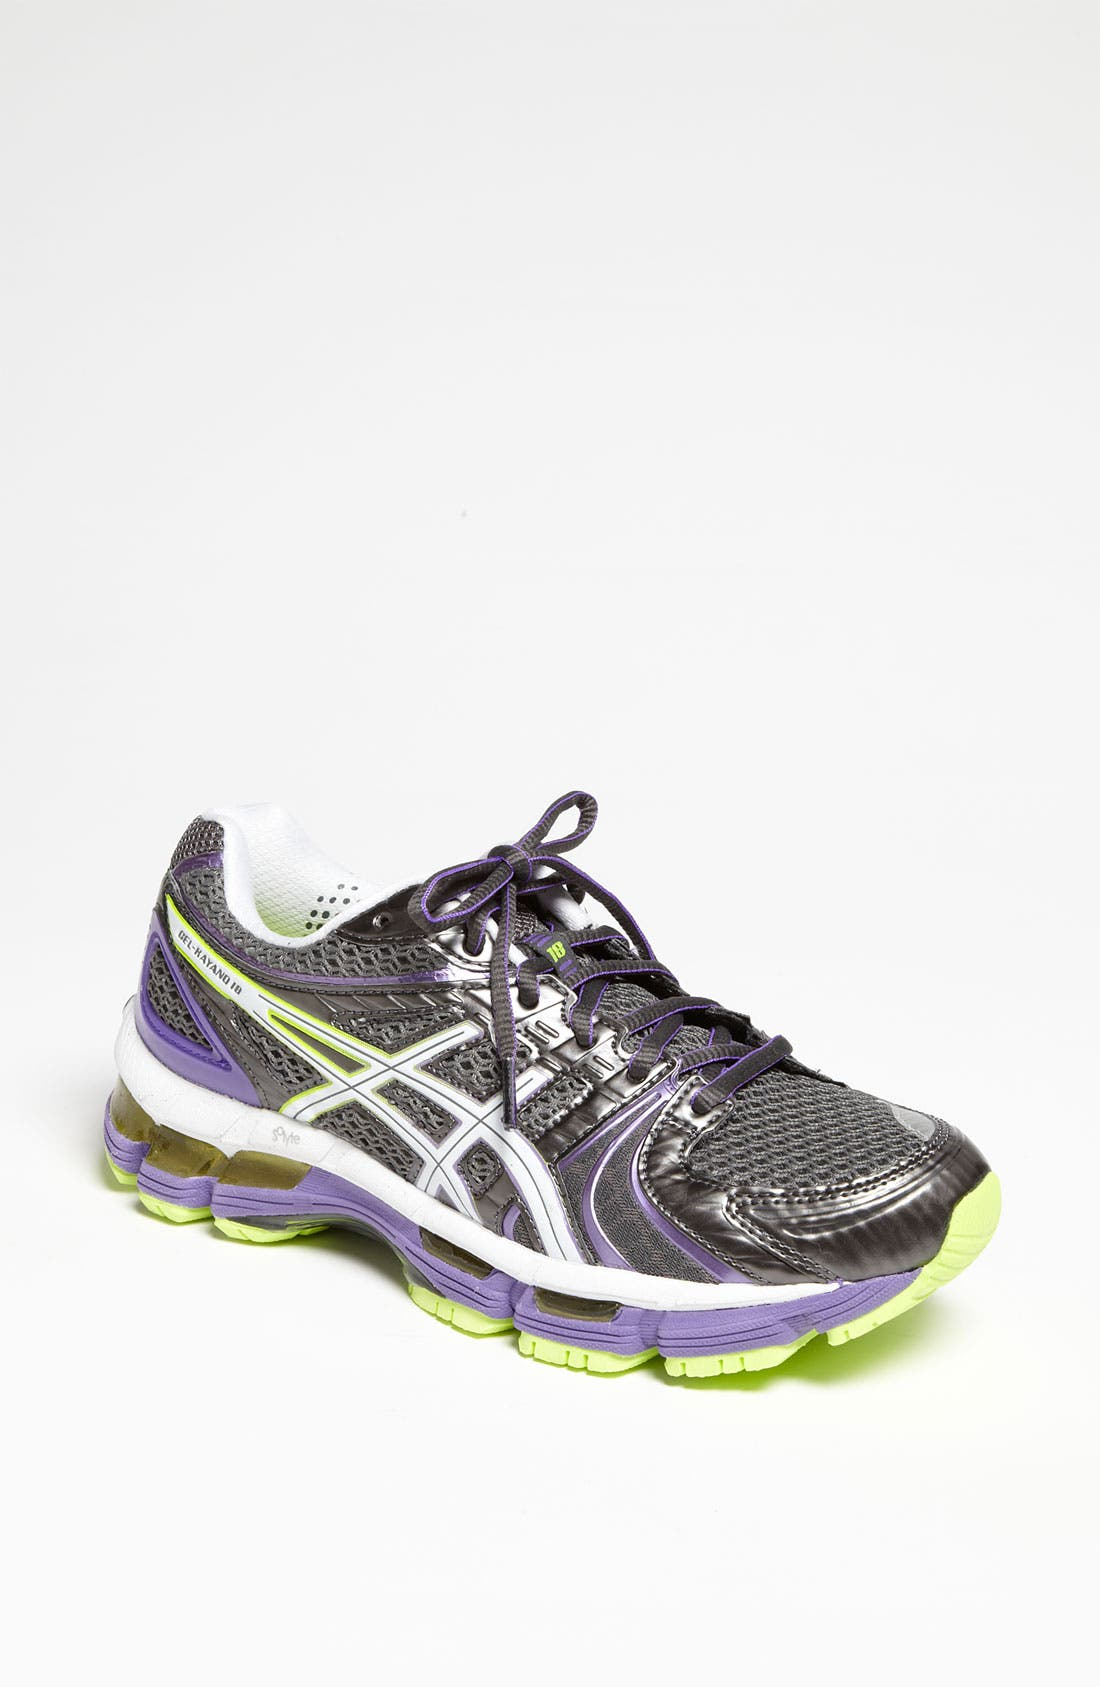 Main Image - ASICS® 'GEL-Kayano 18' Running Shoe (Women) (Regular Retail Price: $144.95)